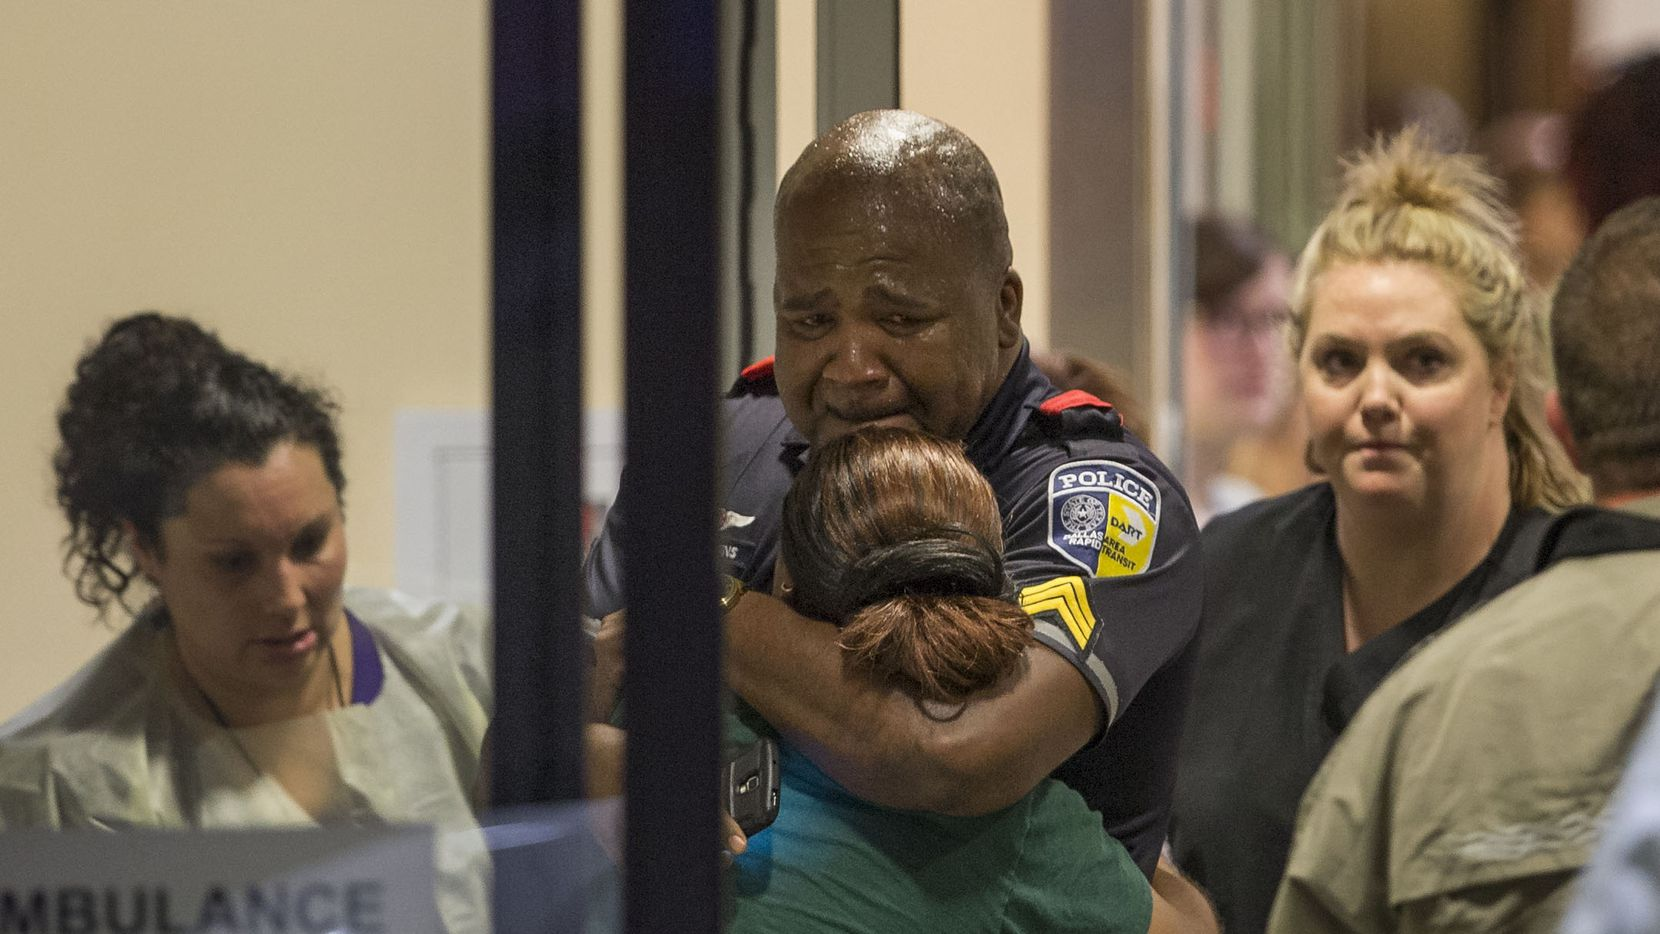 A DART (Dallas Area Rapid Transit) police officer receives comfort at Baylor University Hospital emergency room entrance on July 7, 2016 in Dallas, Texas. Dallas protestors rallied in the aftermath of the killing of Alton Sterling by police officers in Baton Rouge, La. and Philando Castile, who was killed by police less than 48 hours later in Minnesota.